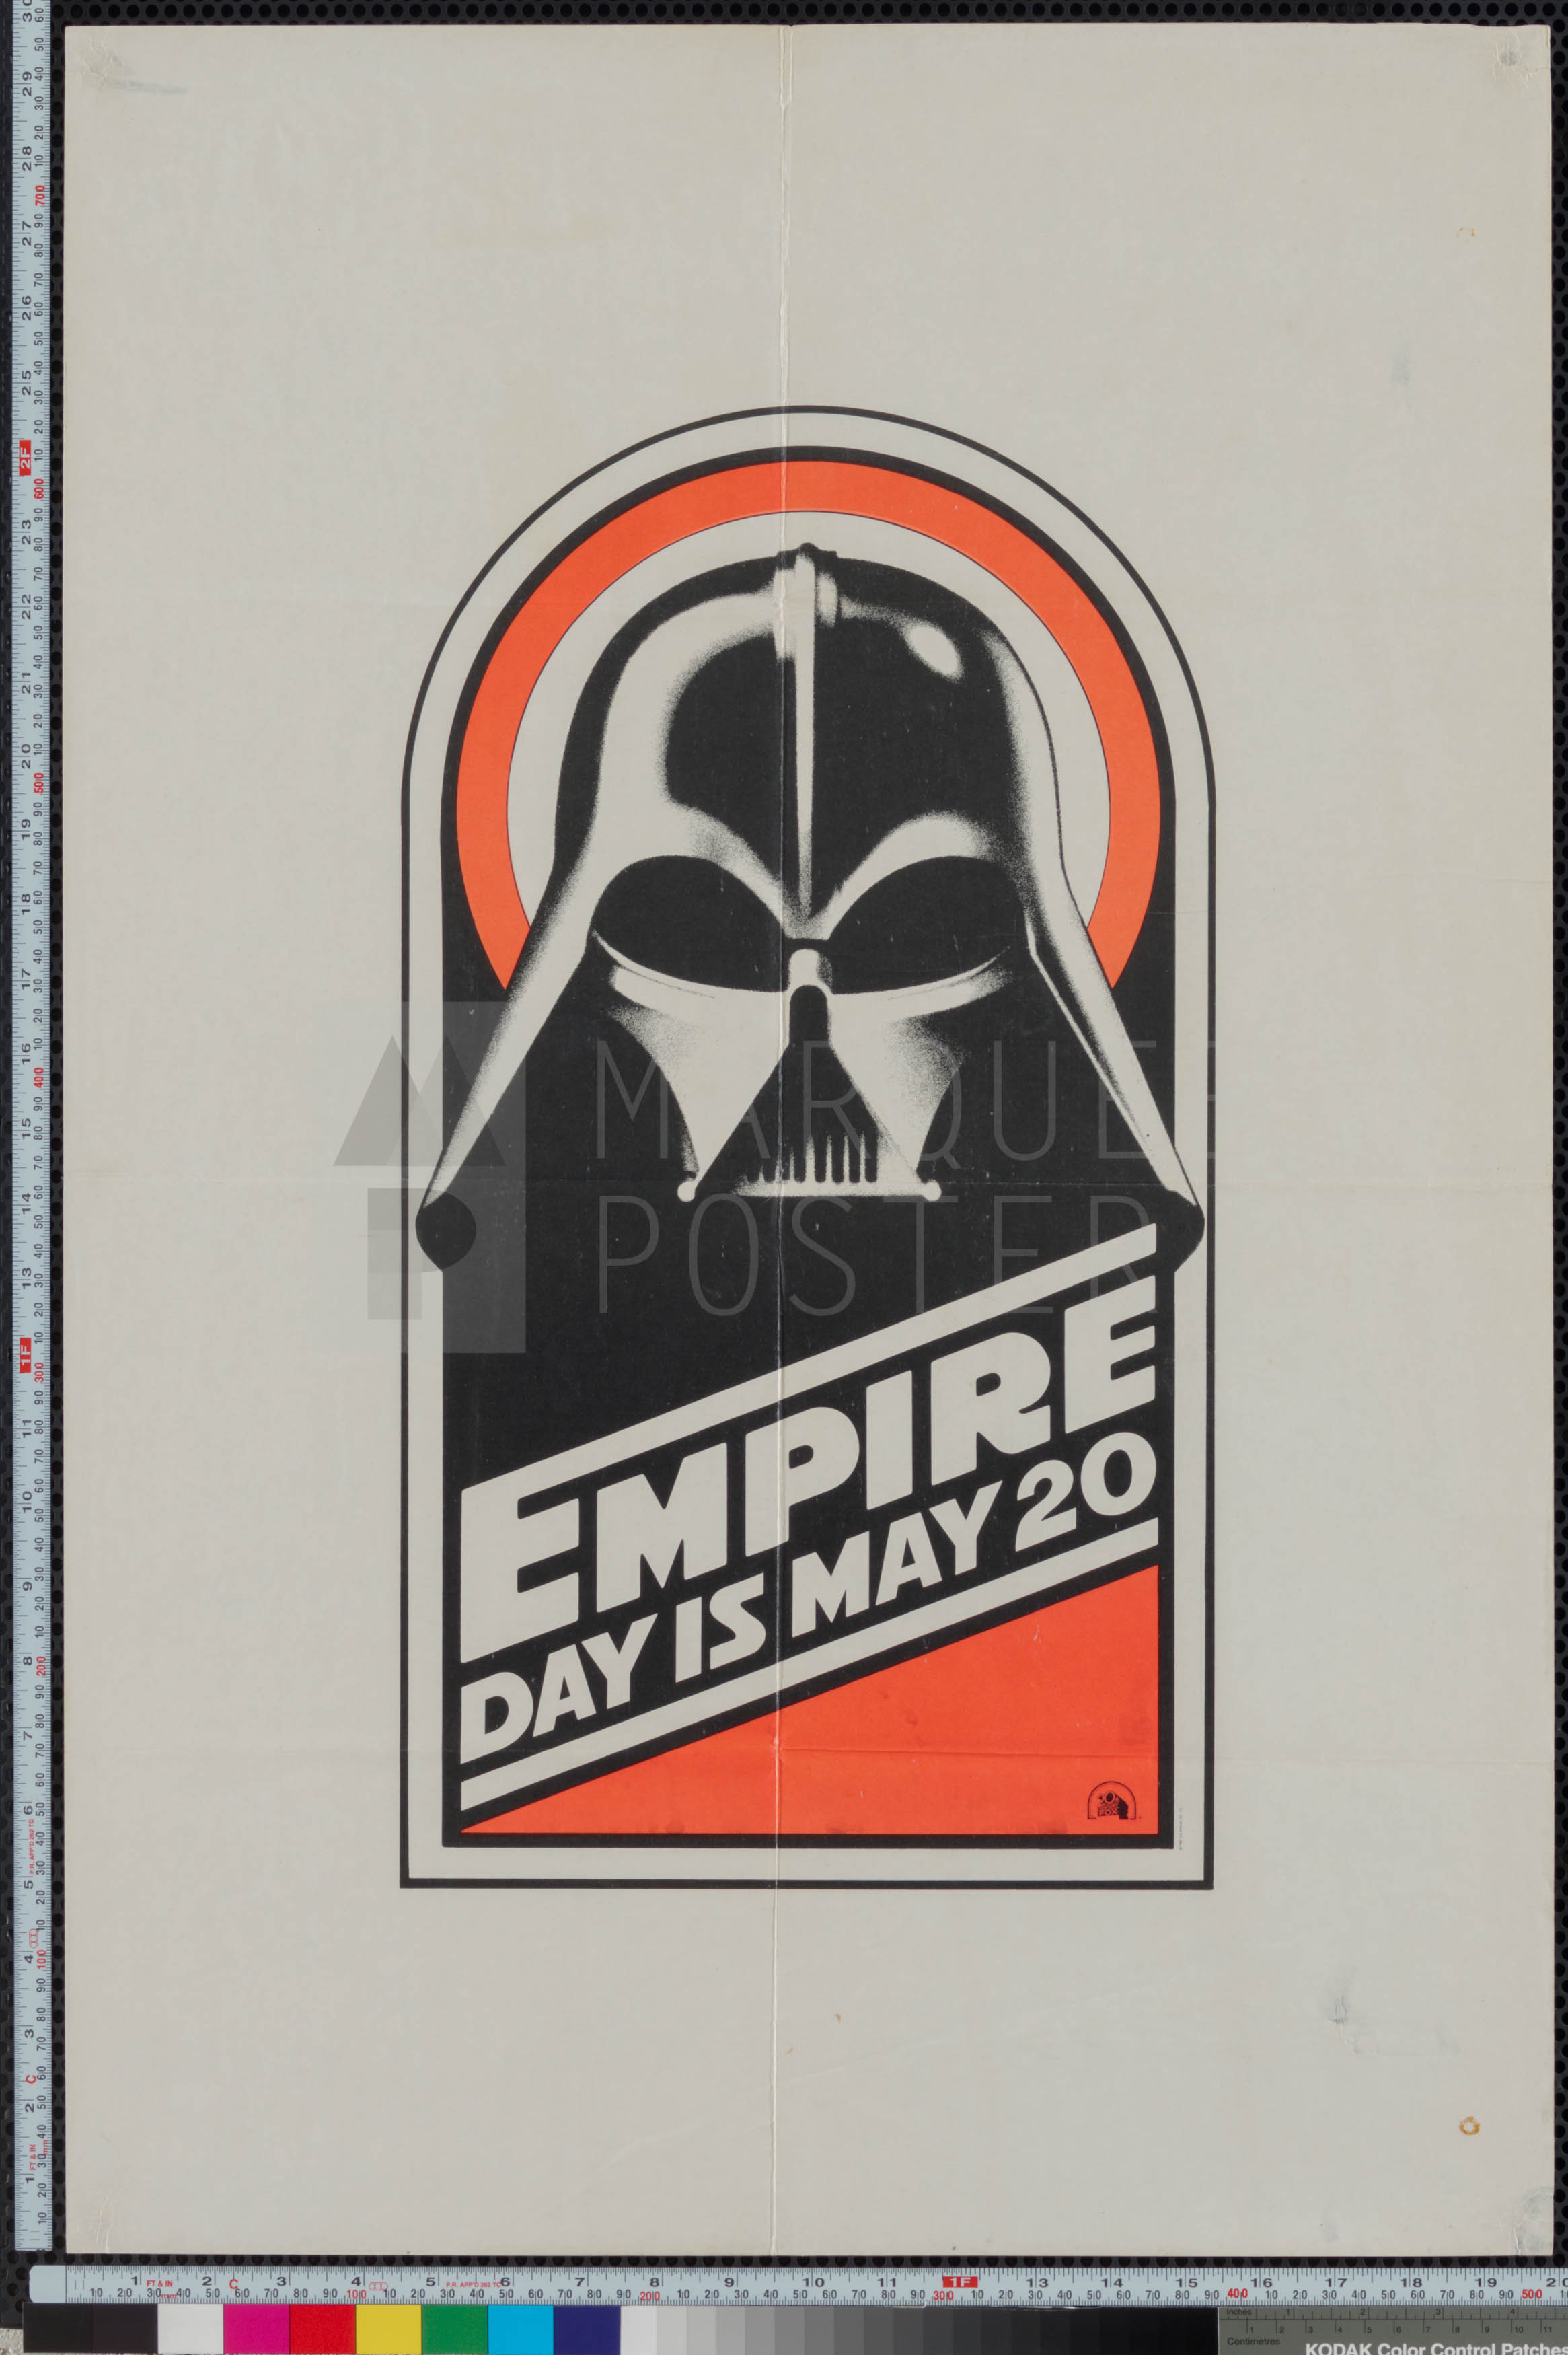 4-star-wars-episode-v-the-empire-strikes-back-uk-premiere-uk-double-crown-1980-02